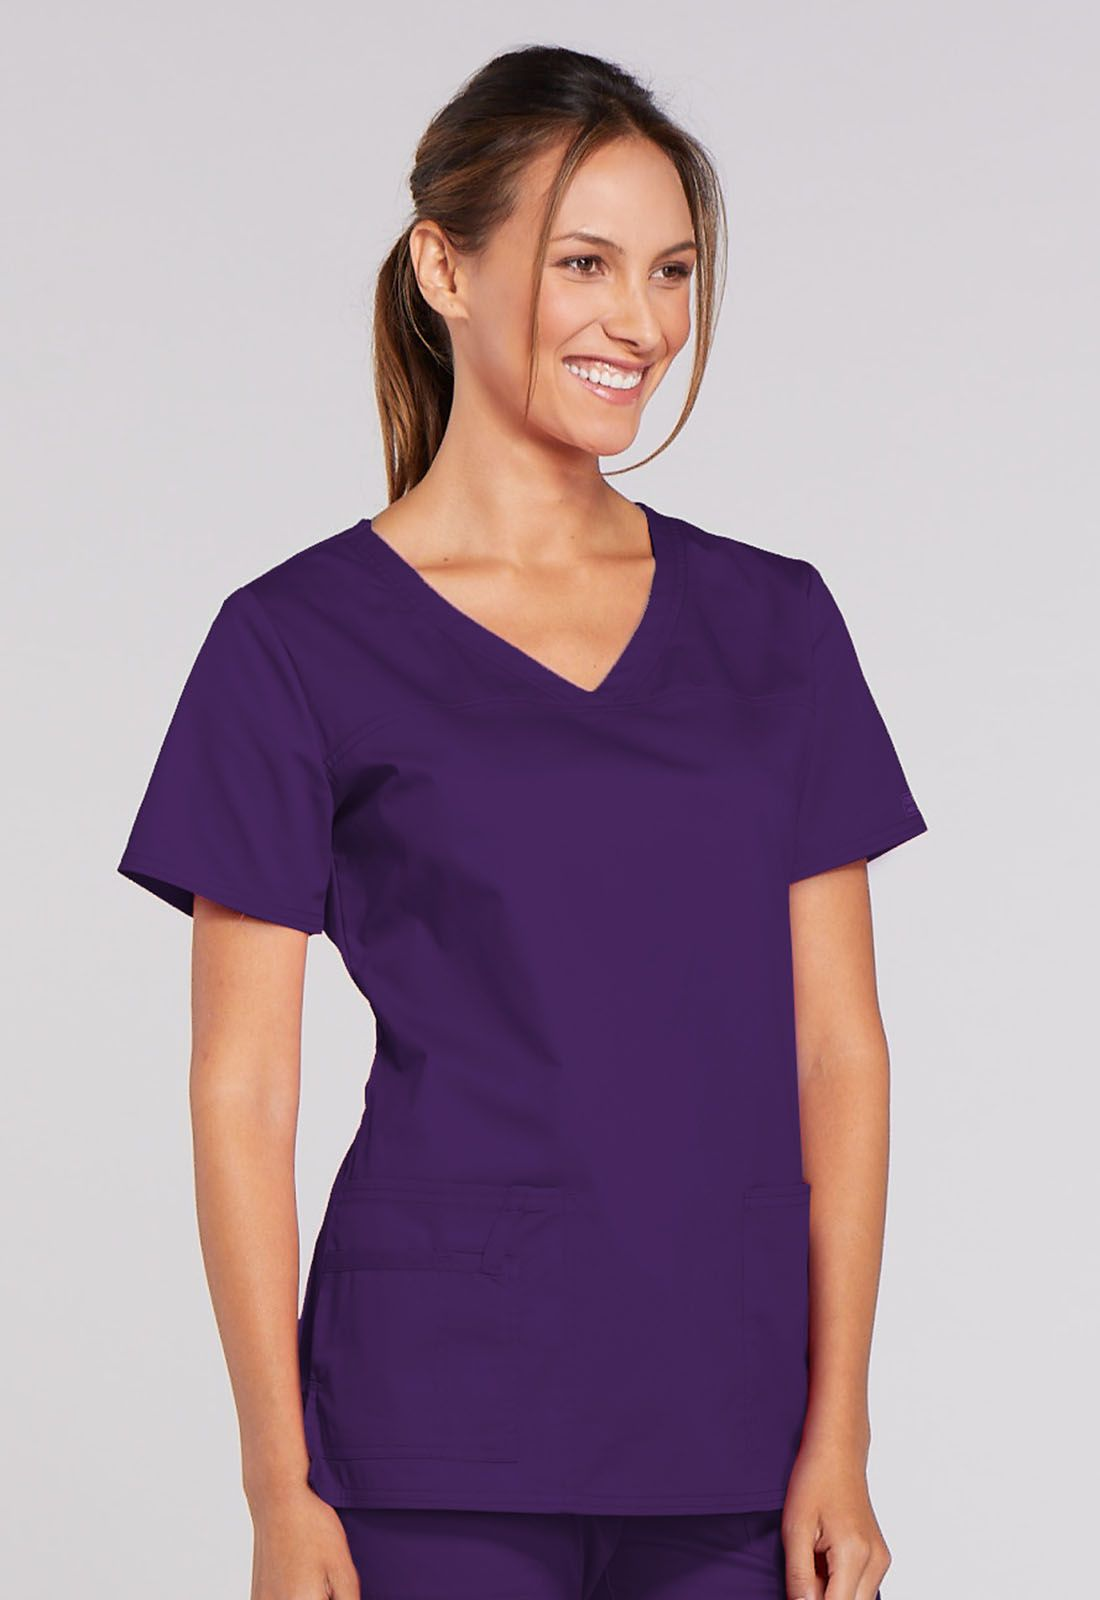 https://medcloth.by/images/stories/virtuemart/product/cherokee-4727-eggplant-2.jpg